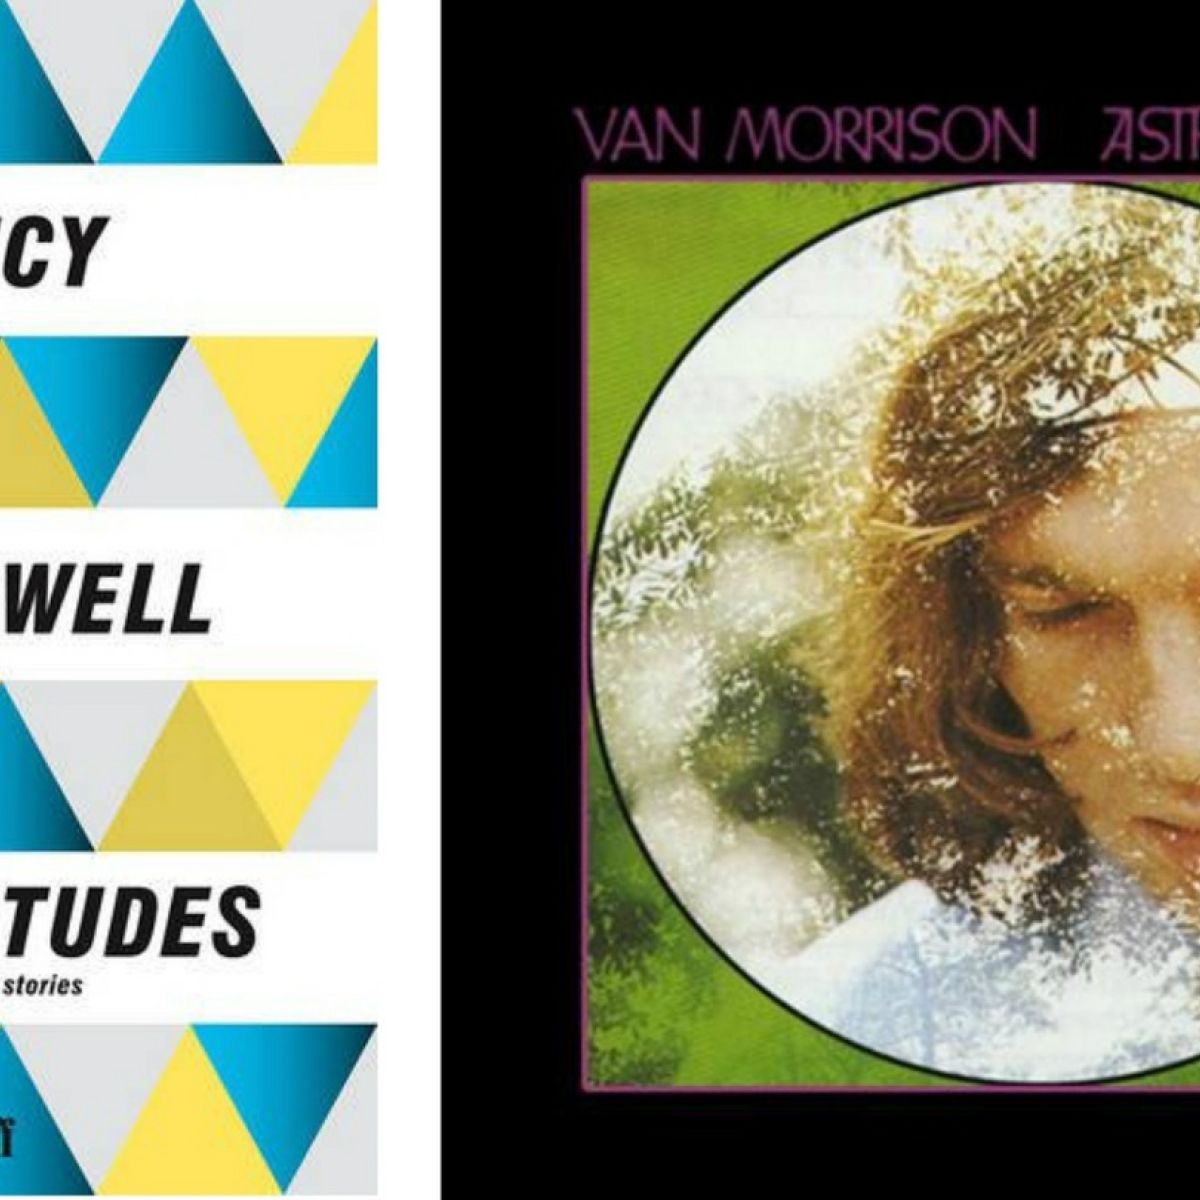 Streets Like These: Lucy Caldwell on Van Morrison's influence